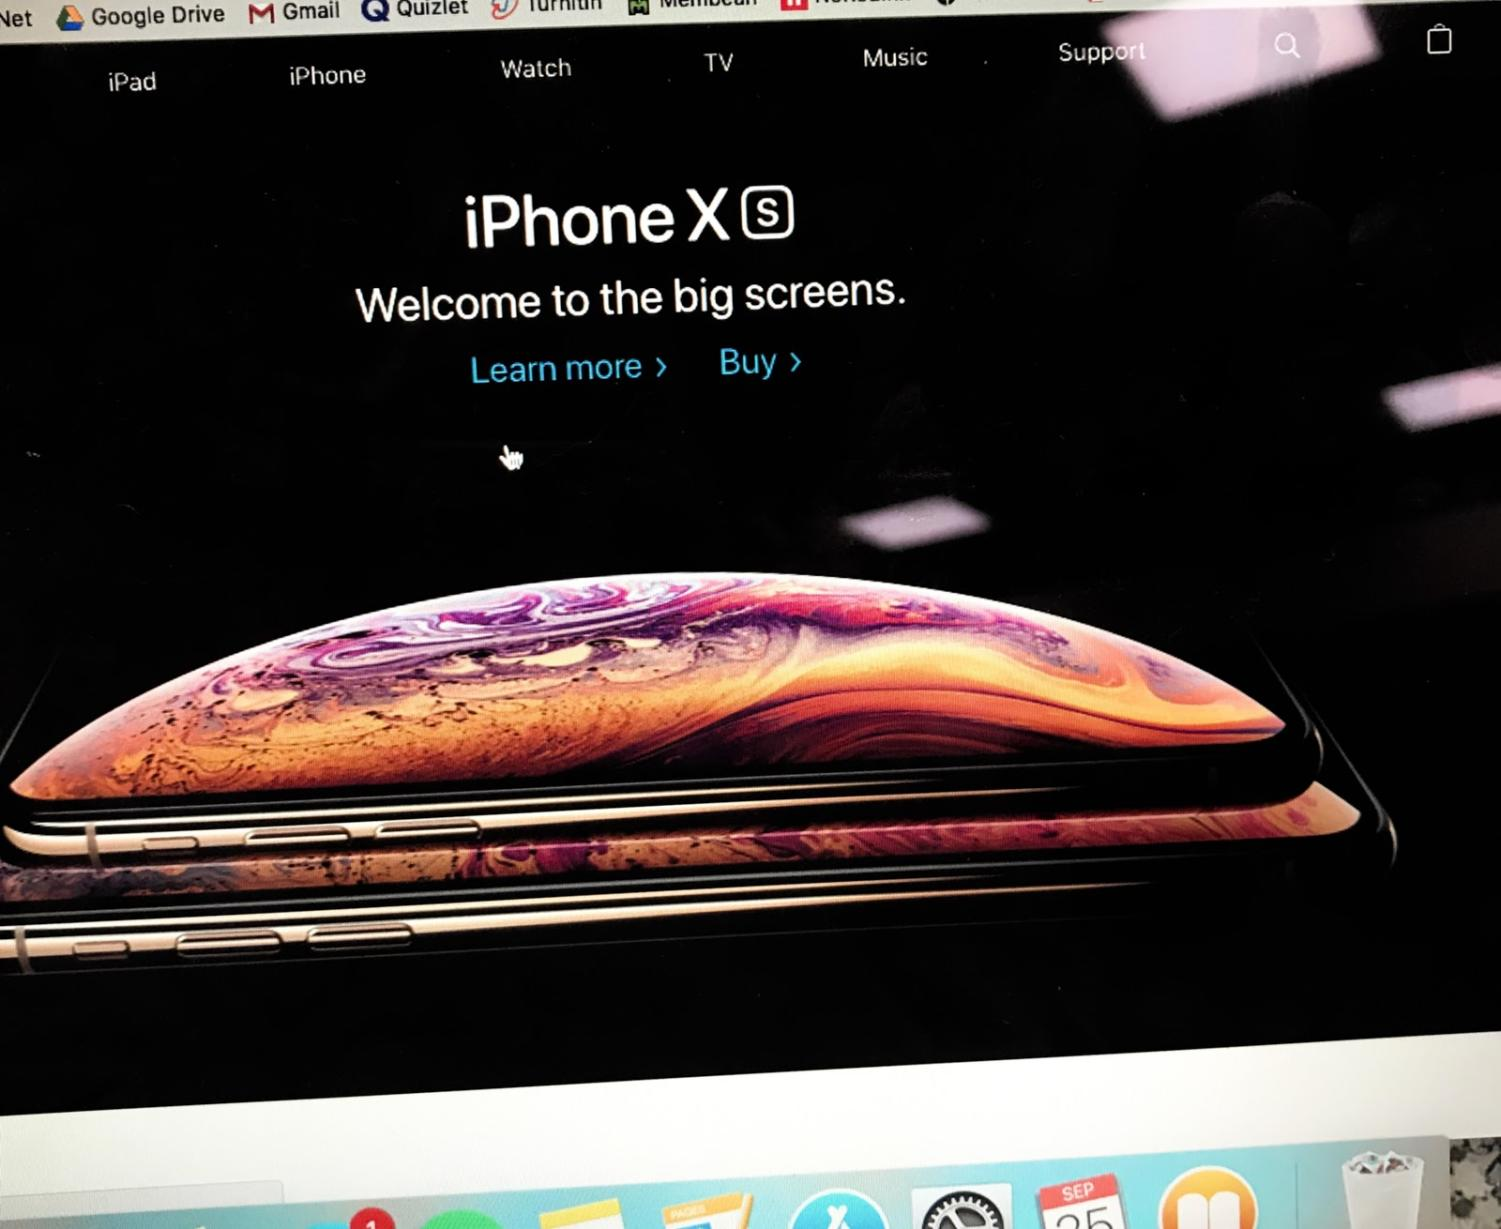 The Apple website's advertisement for the new iPhone